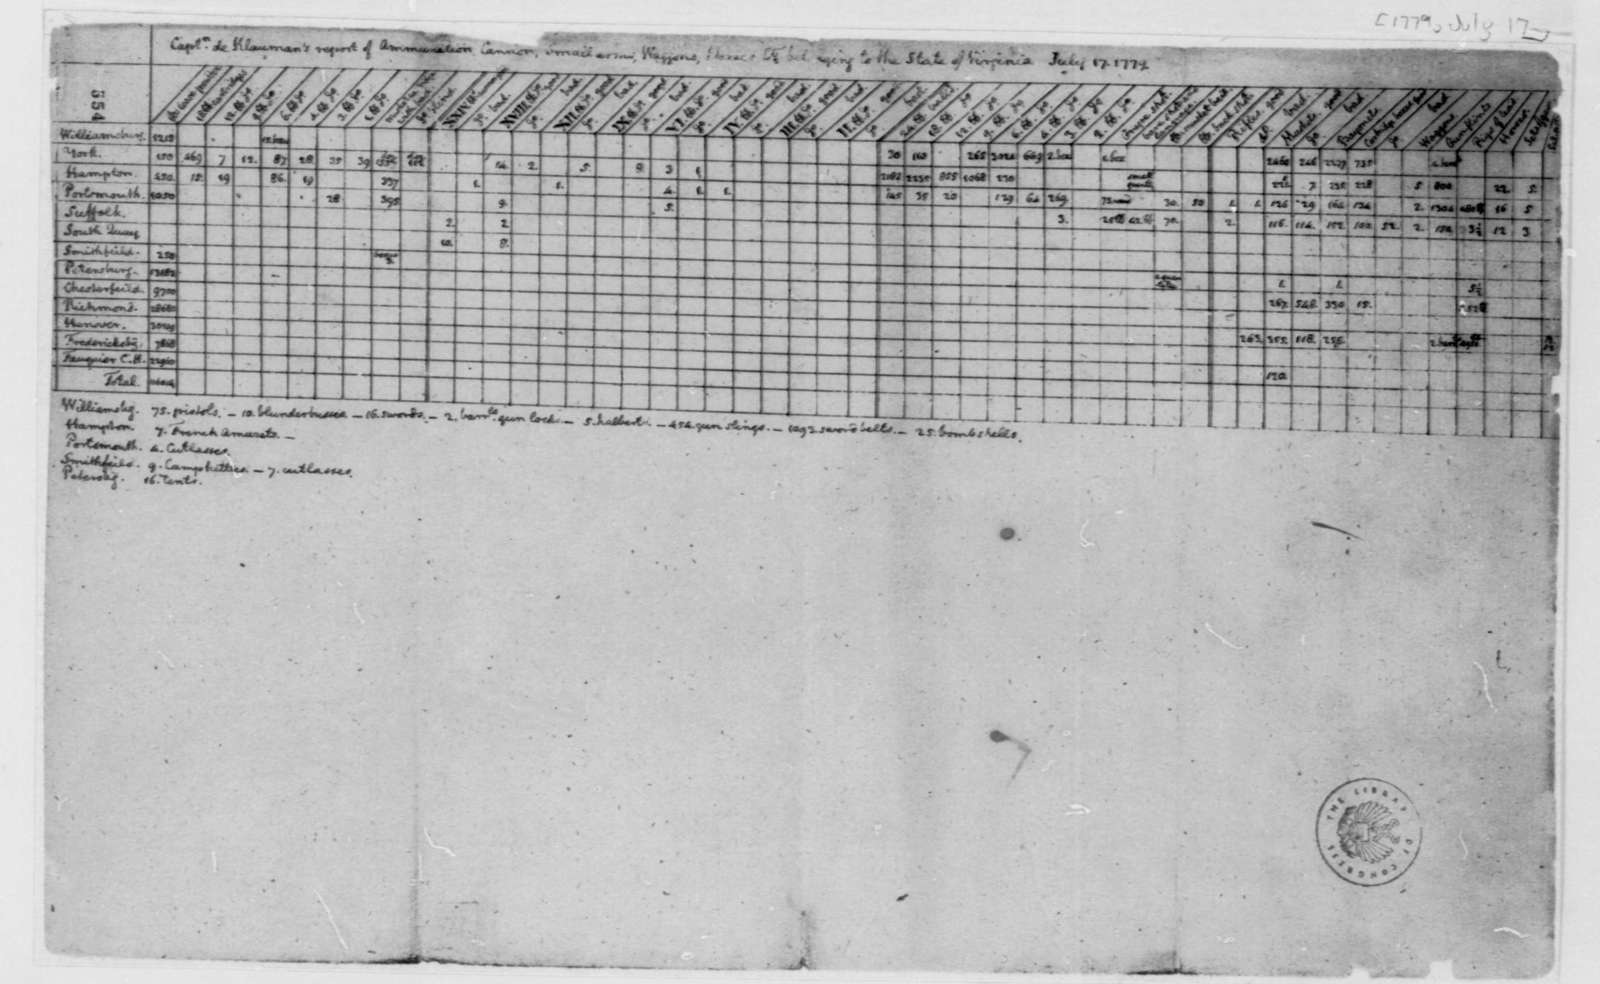 Charles de Klauman, July 17, 1779, Table of Ordnance and Supplies of the Virginia Militia